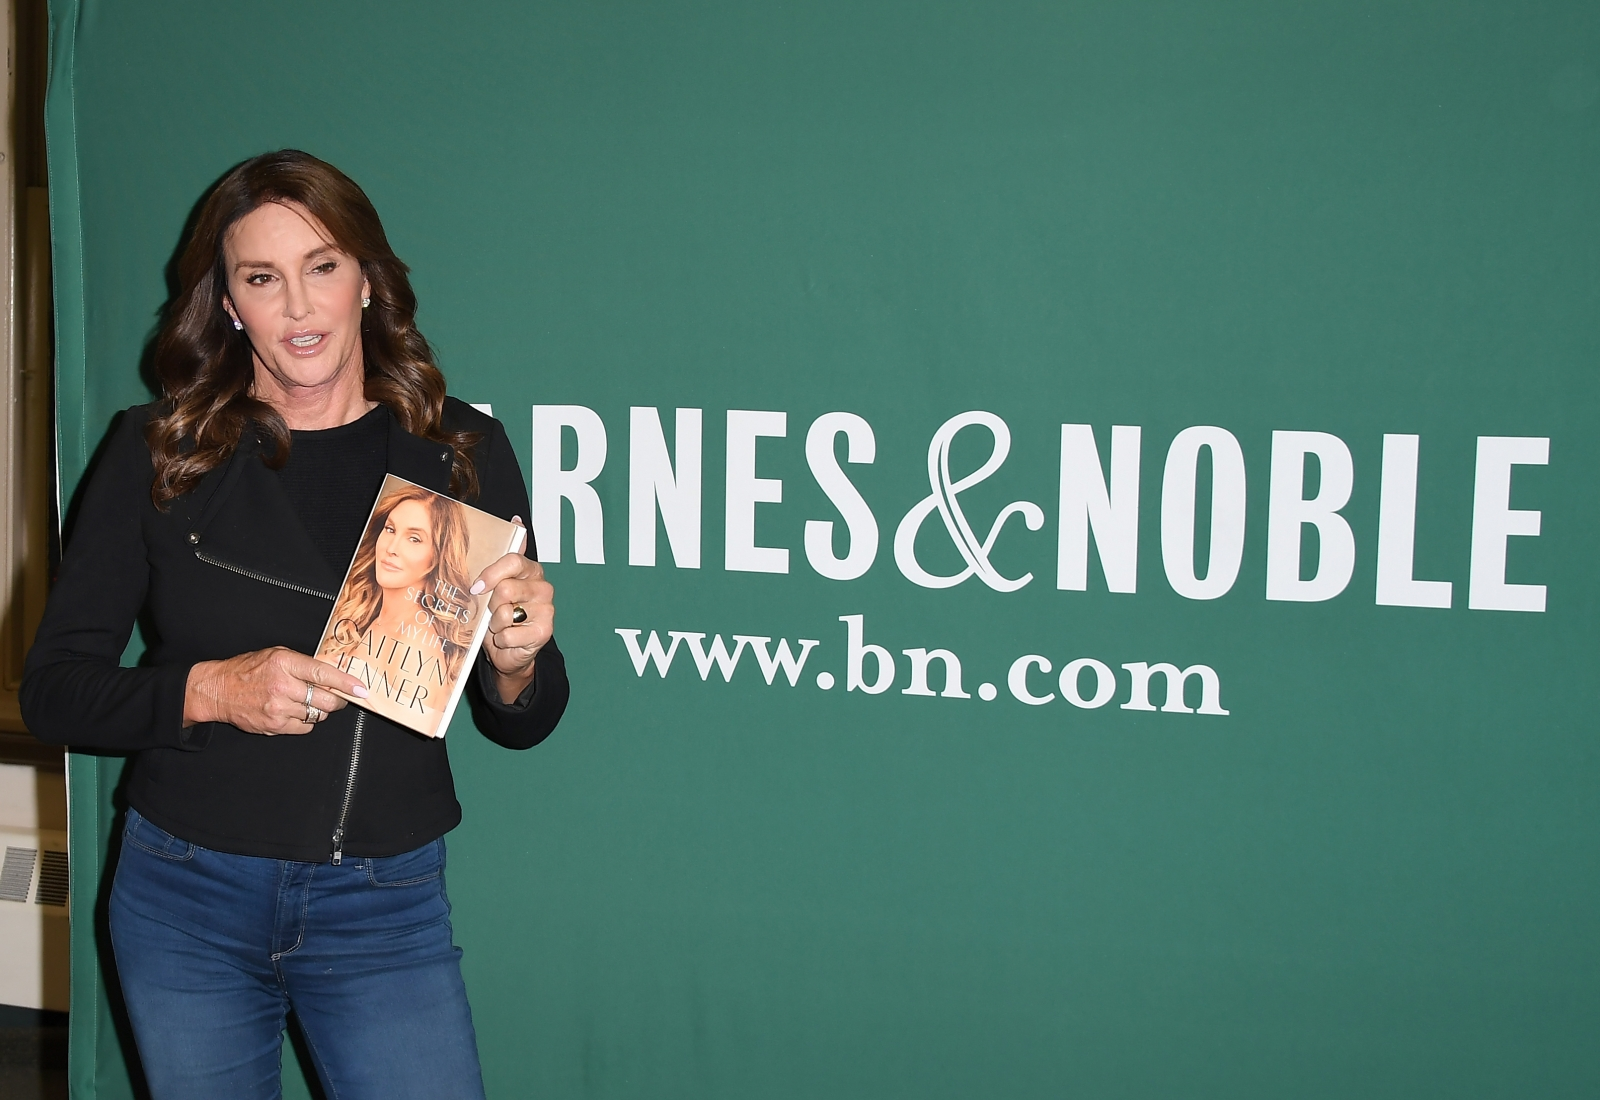 Caitlyn's Popularity as Baby Name Drops After Jenner Transition